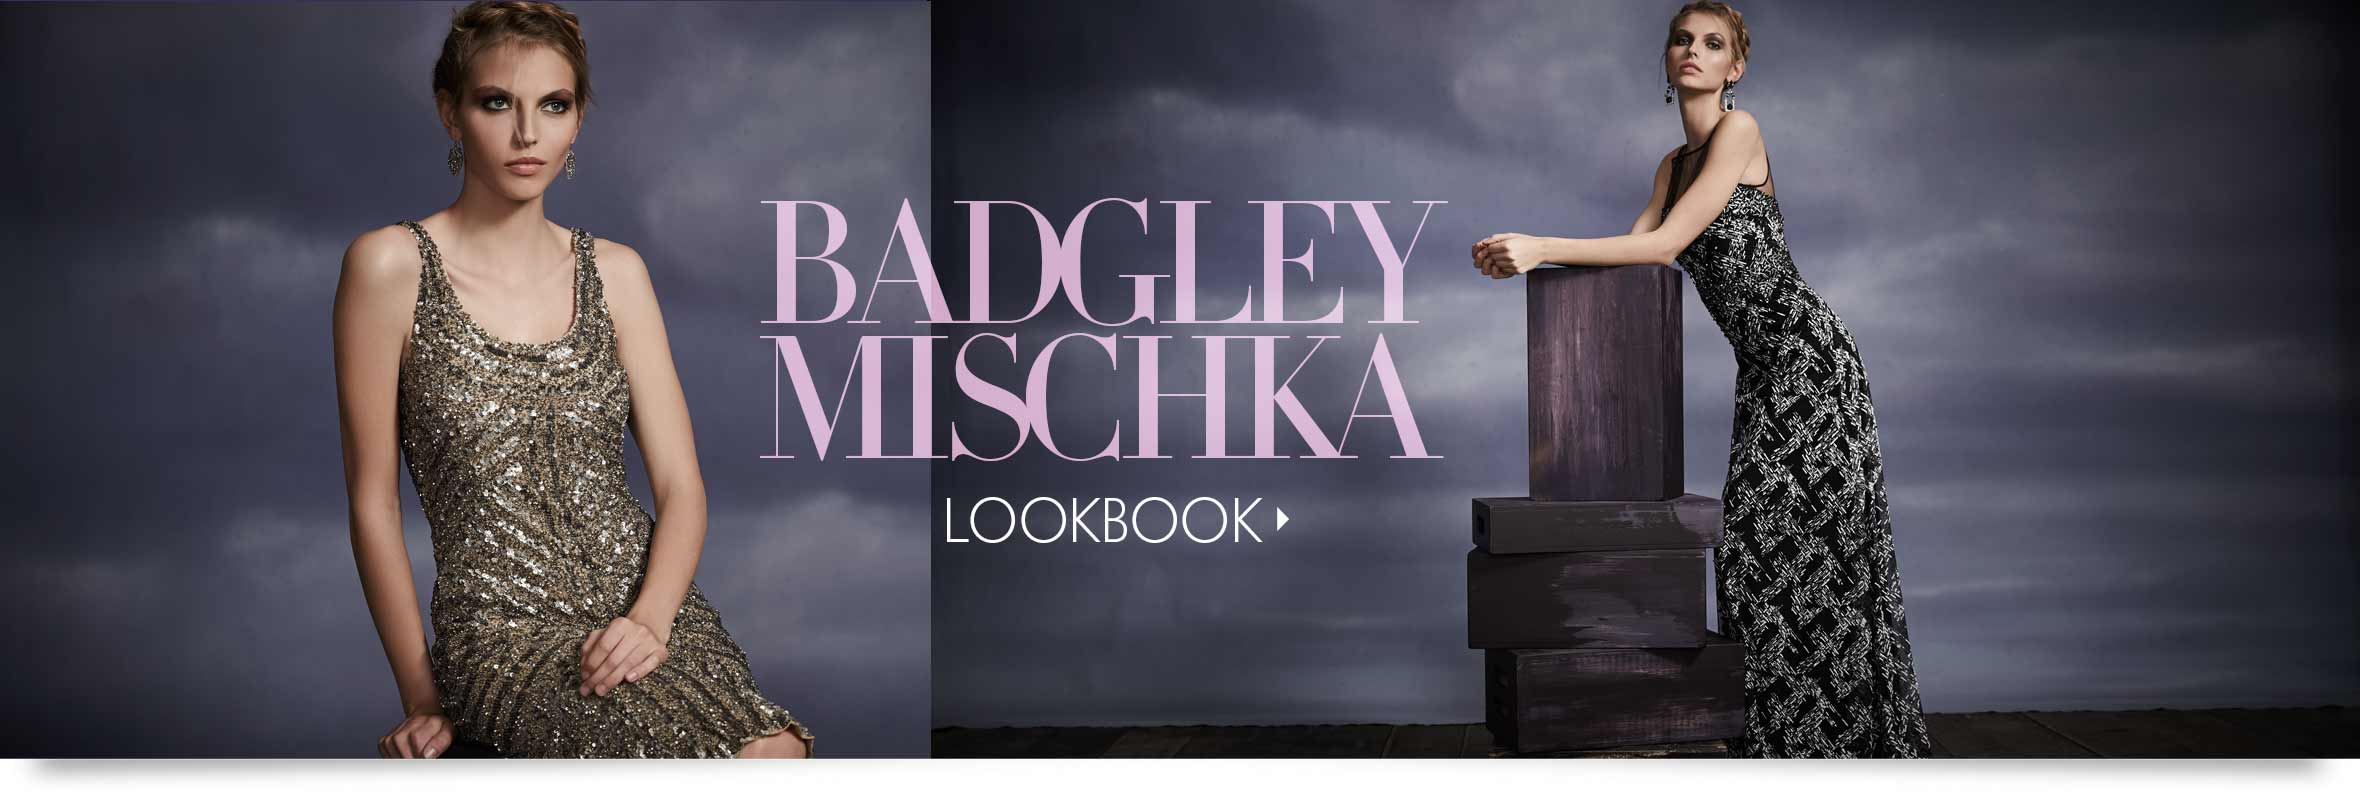 BADGLEY MISCHKA: Shop the Lookbook